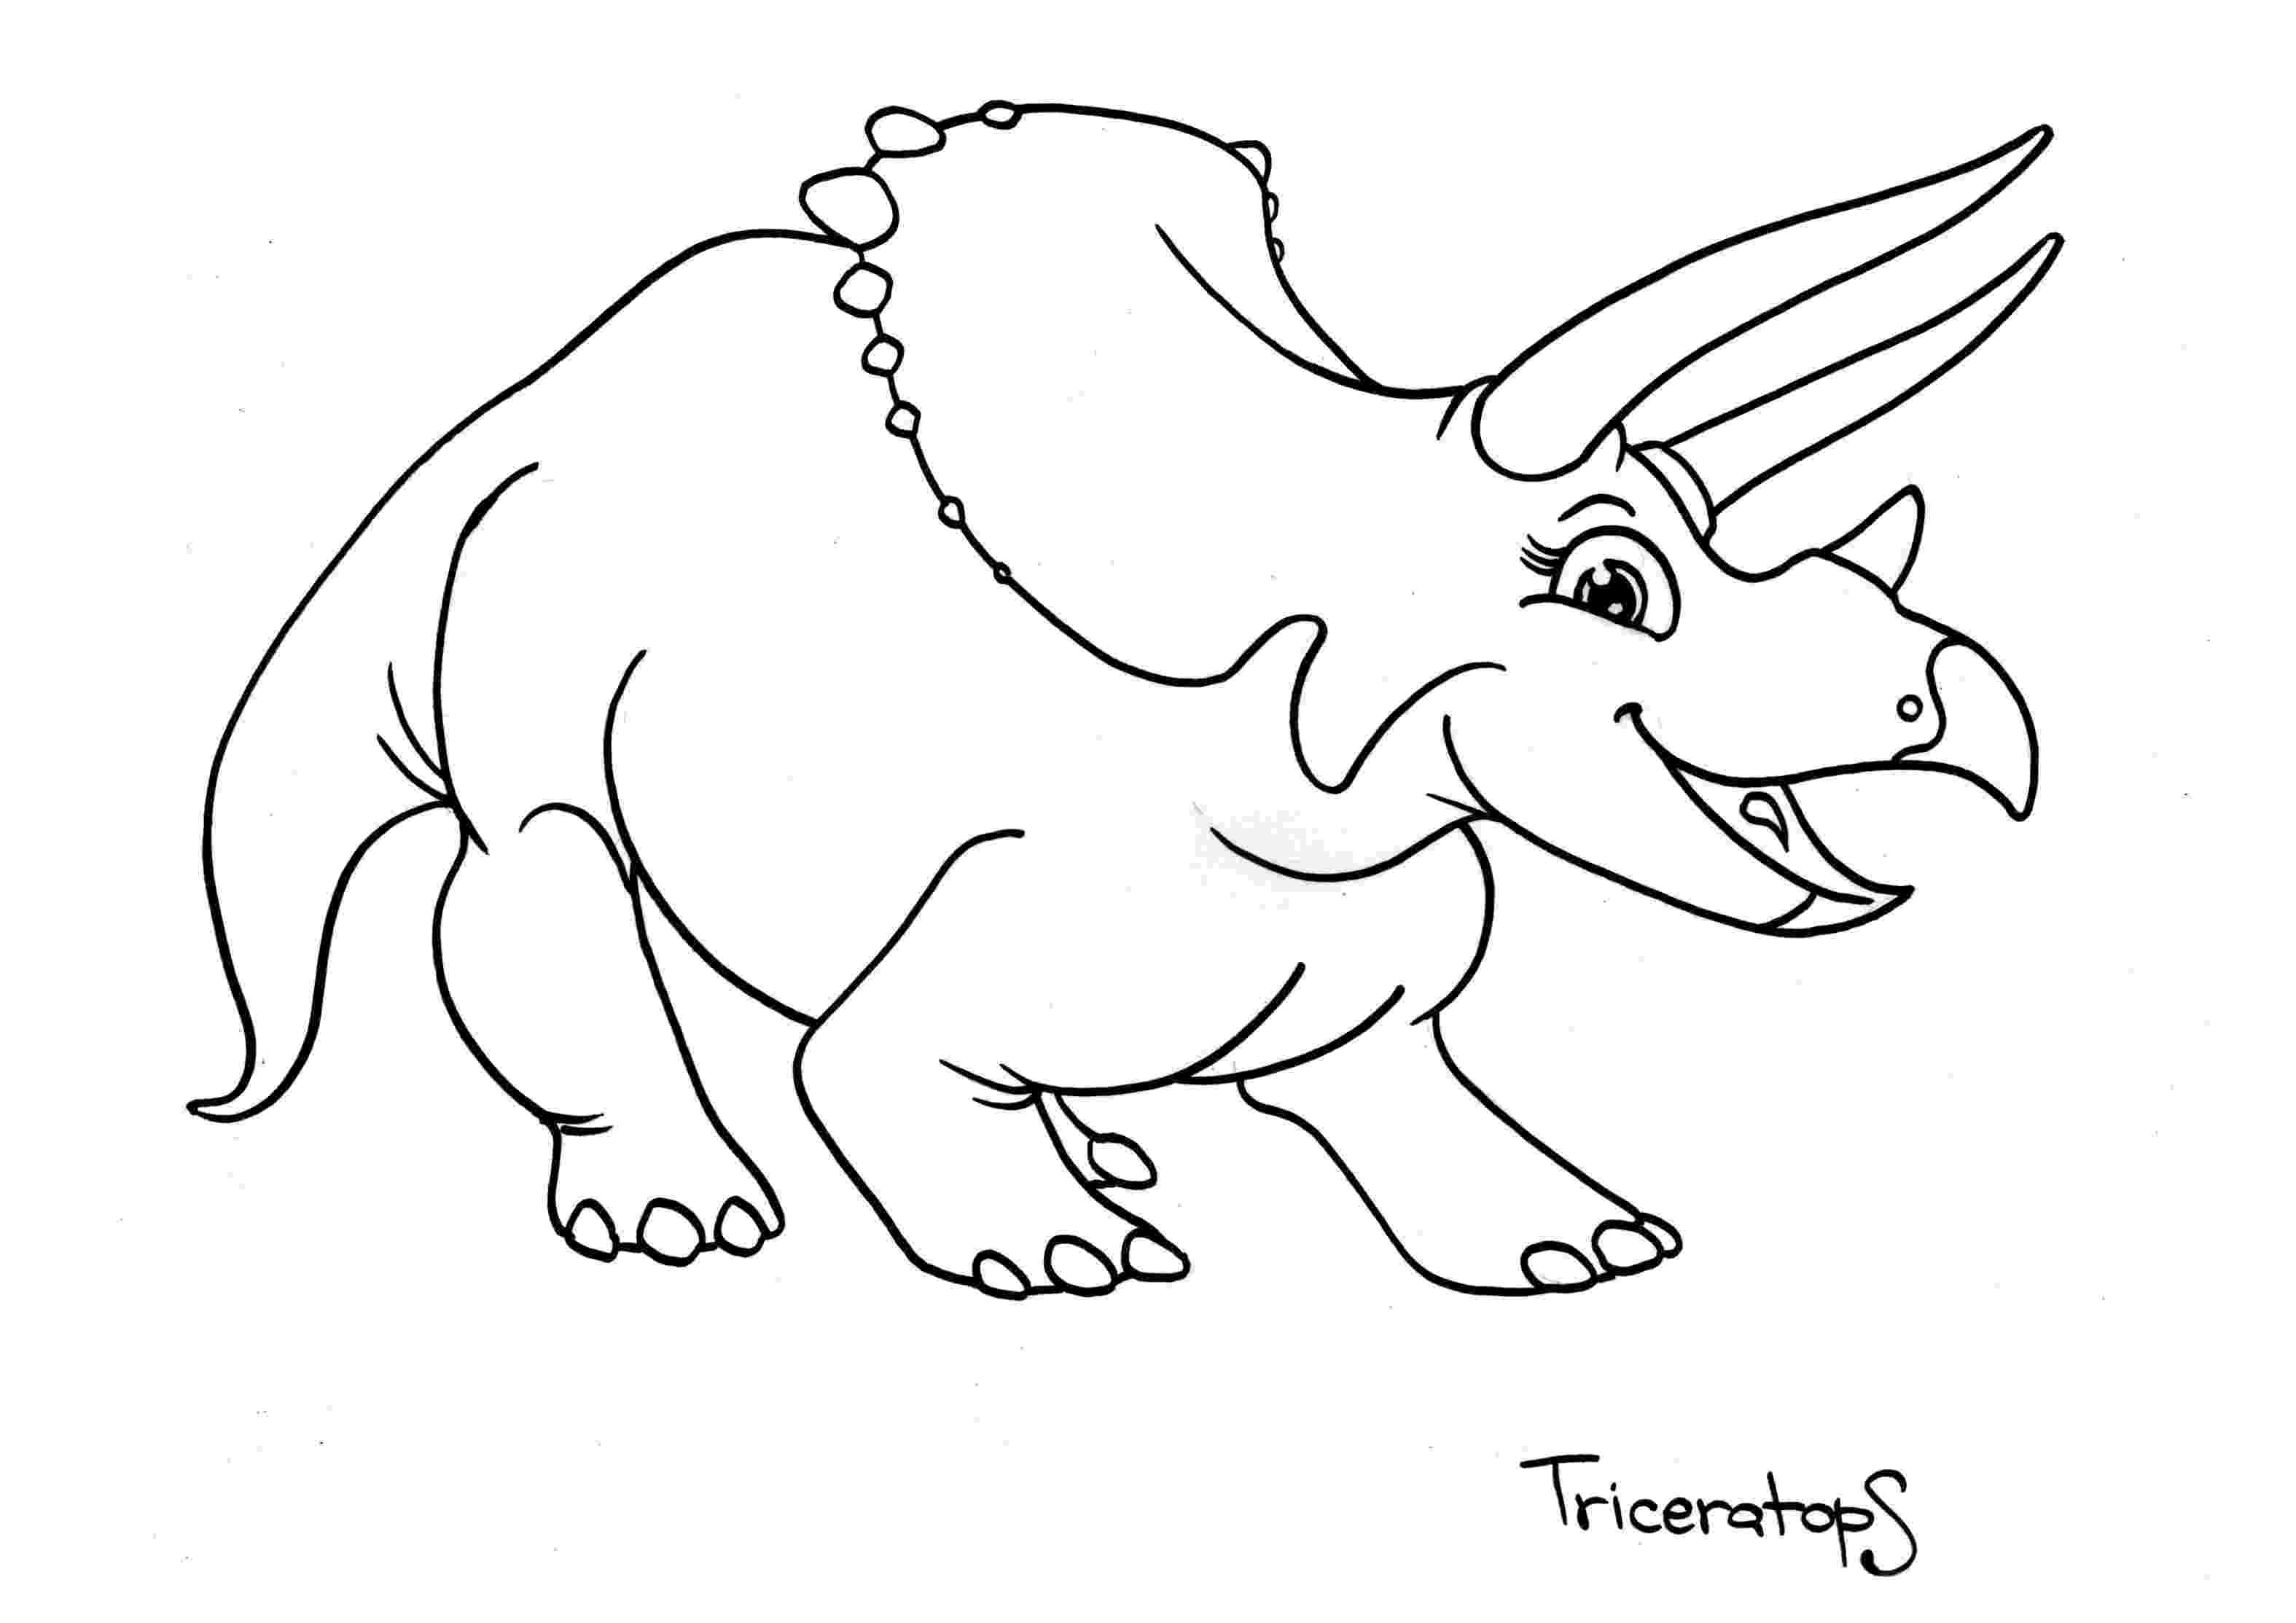 dinosaur coloring pages free printable coloring pages images dinosaurs pictures and facts page pages dinosaur printable free coloring